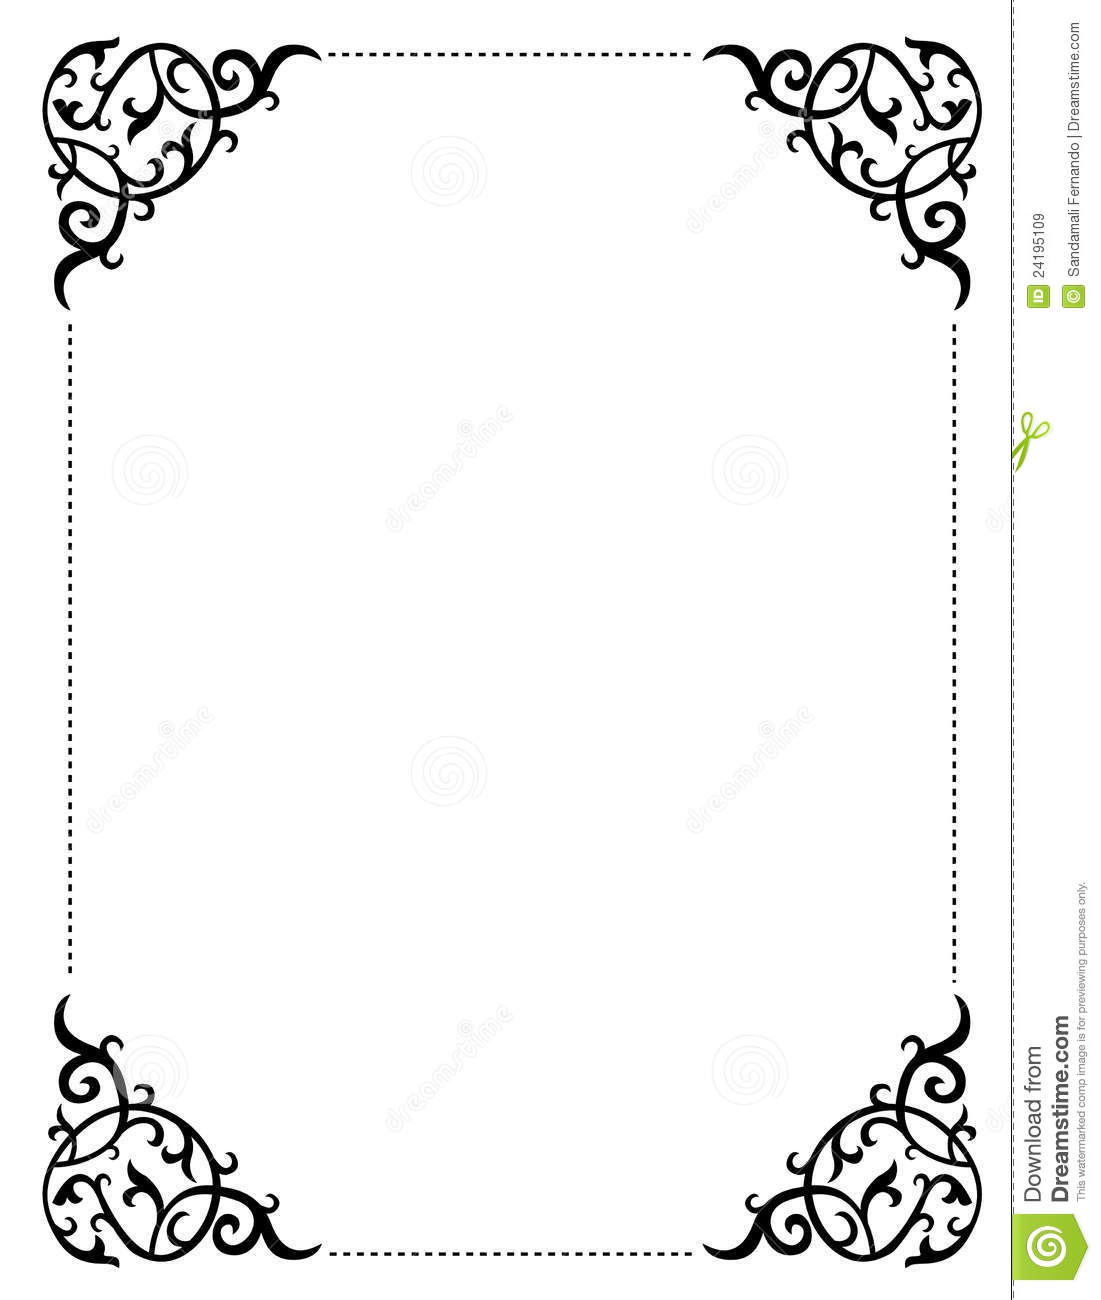 4 Images of Free Printable Wedding Borders Clip Art